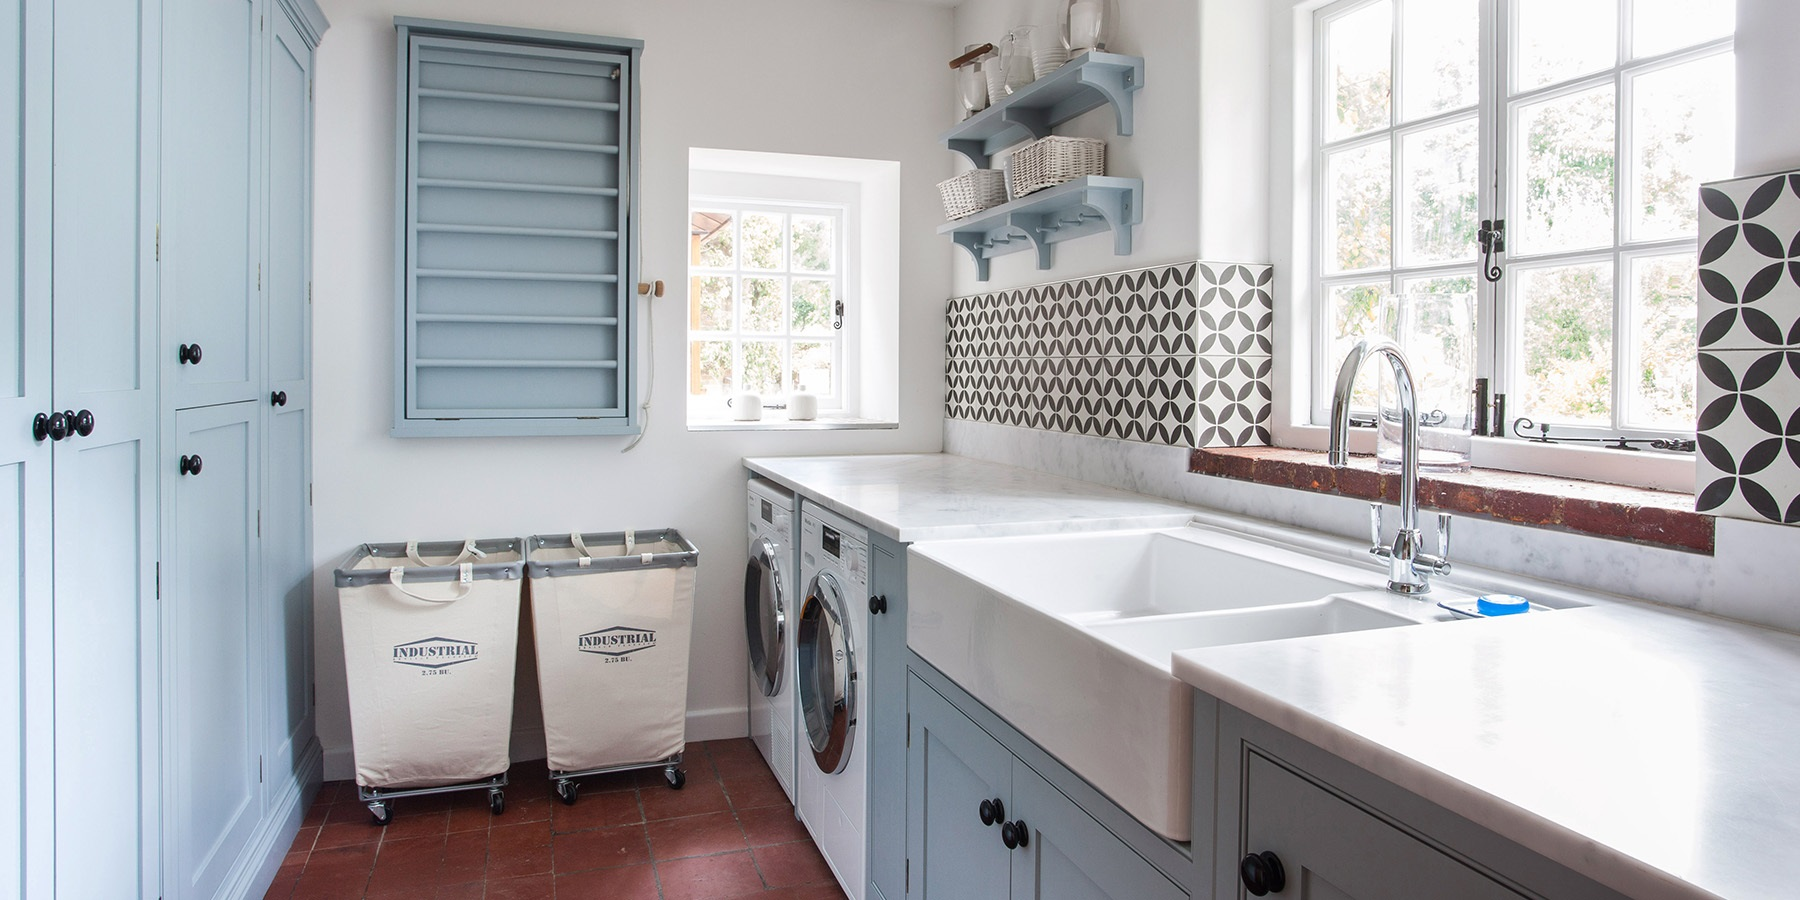 Handmade Traditional Utility Room Furniture - Burlanes bespoke utility room furniture with sheila maid, belfast sink and beautiful encaustic tiles by Ca'Pietra.